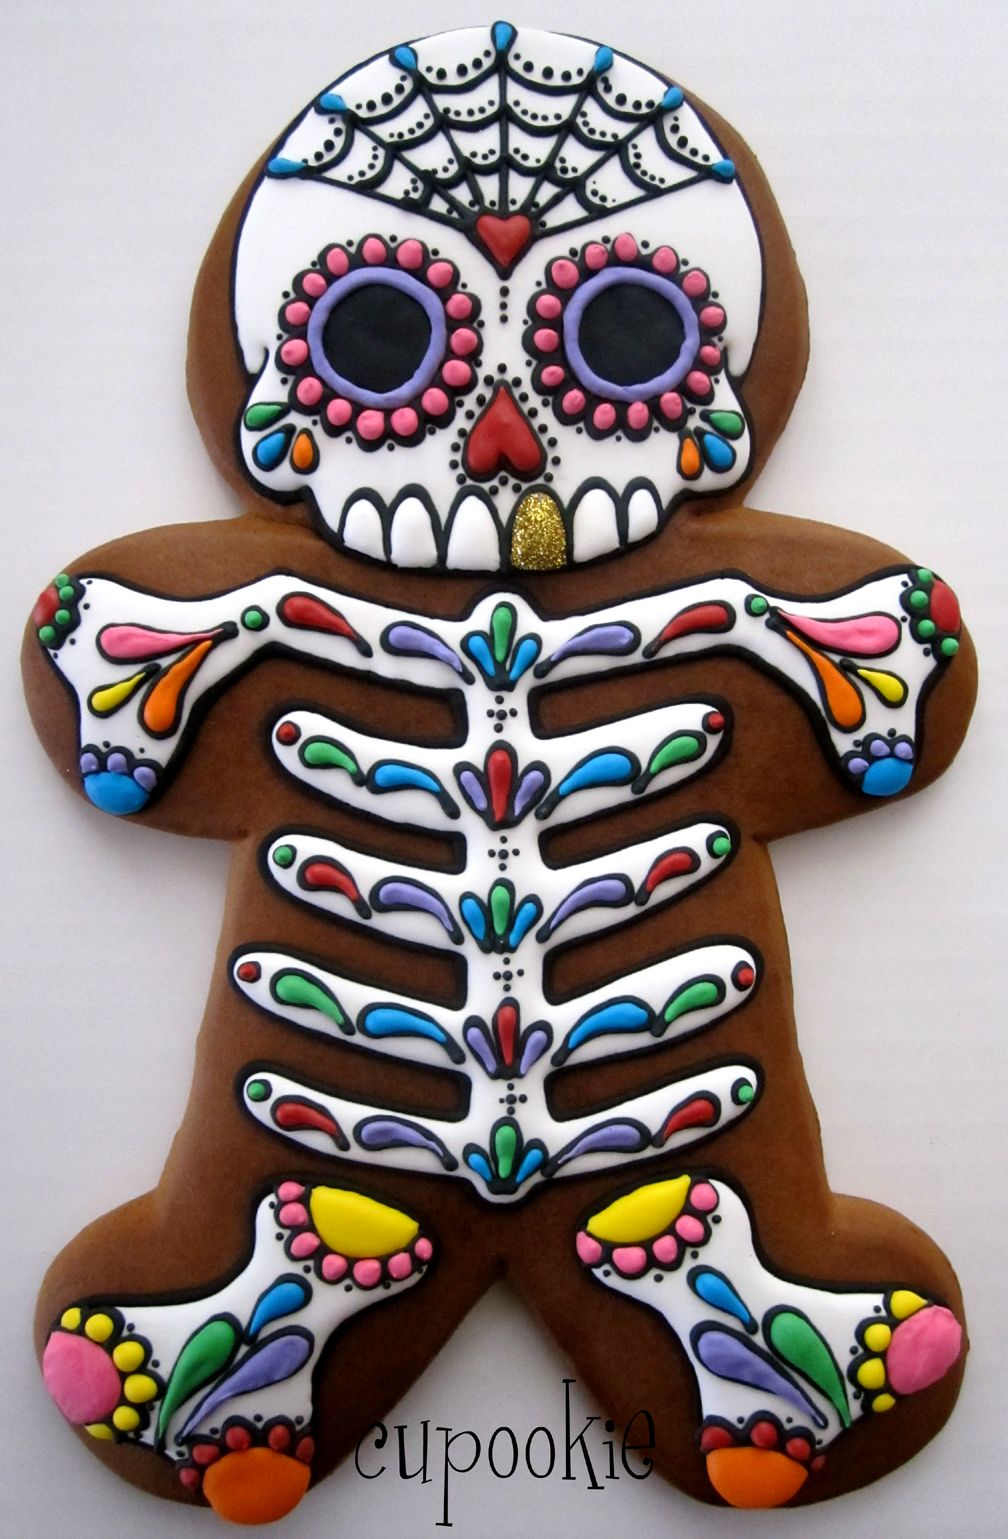 Cake Decorating Sugar Dough : : Day of the Dead gingerbread man! Things that make me ...